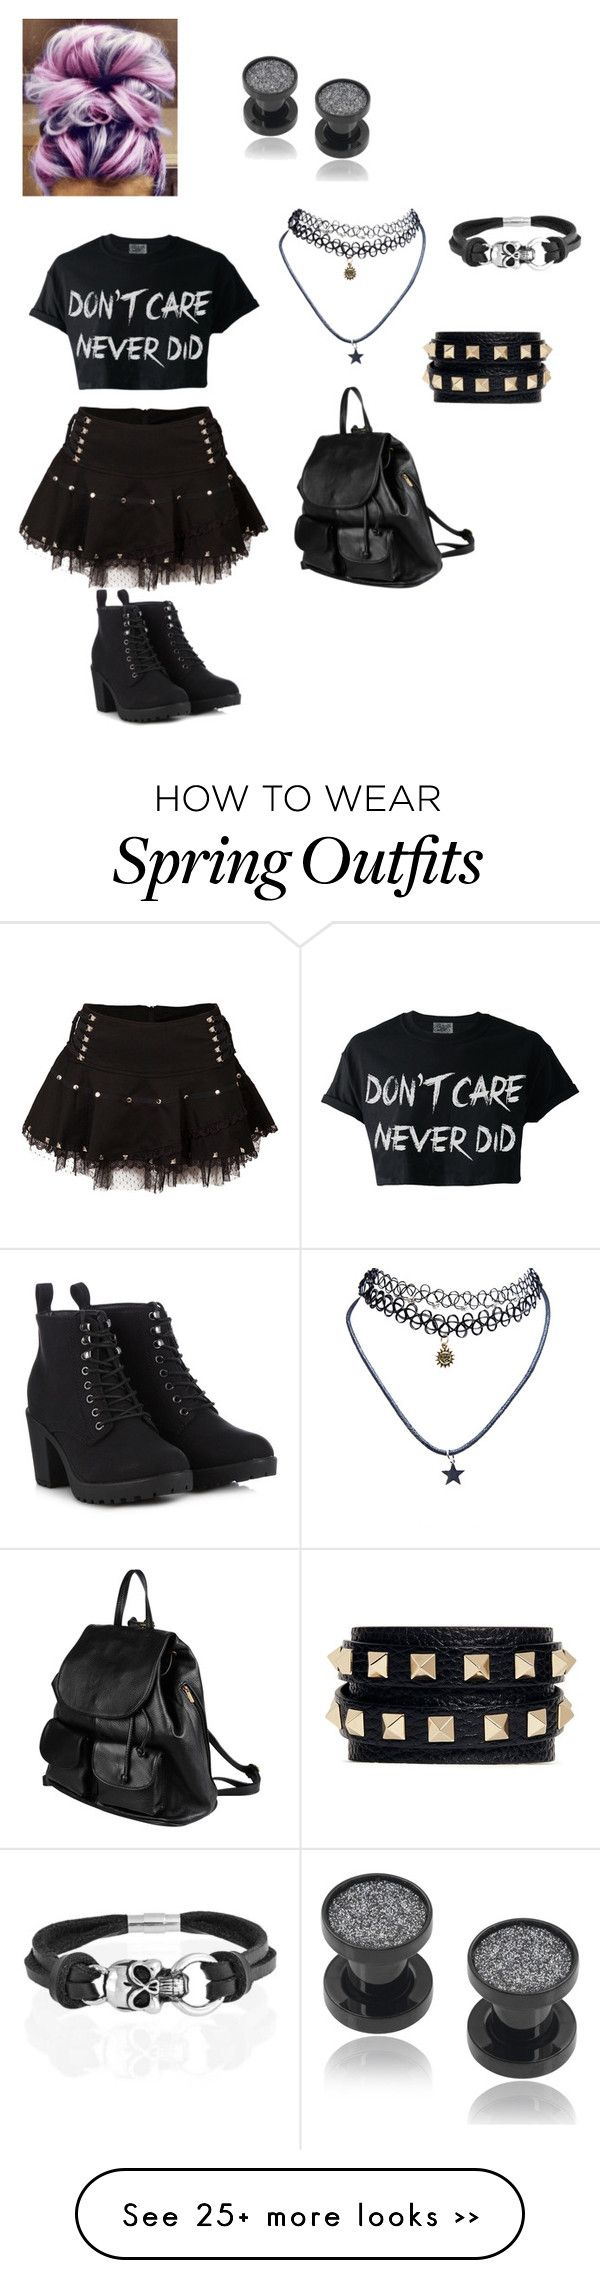 """dream outfit"" by unicornbri on Polyvore"